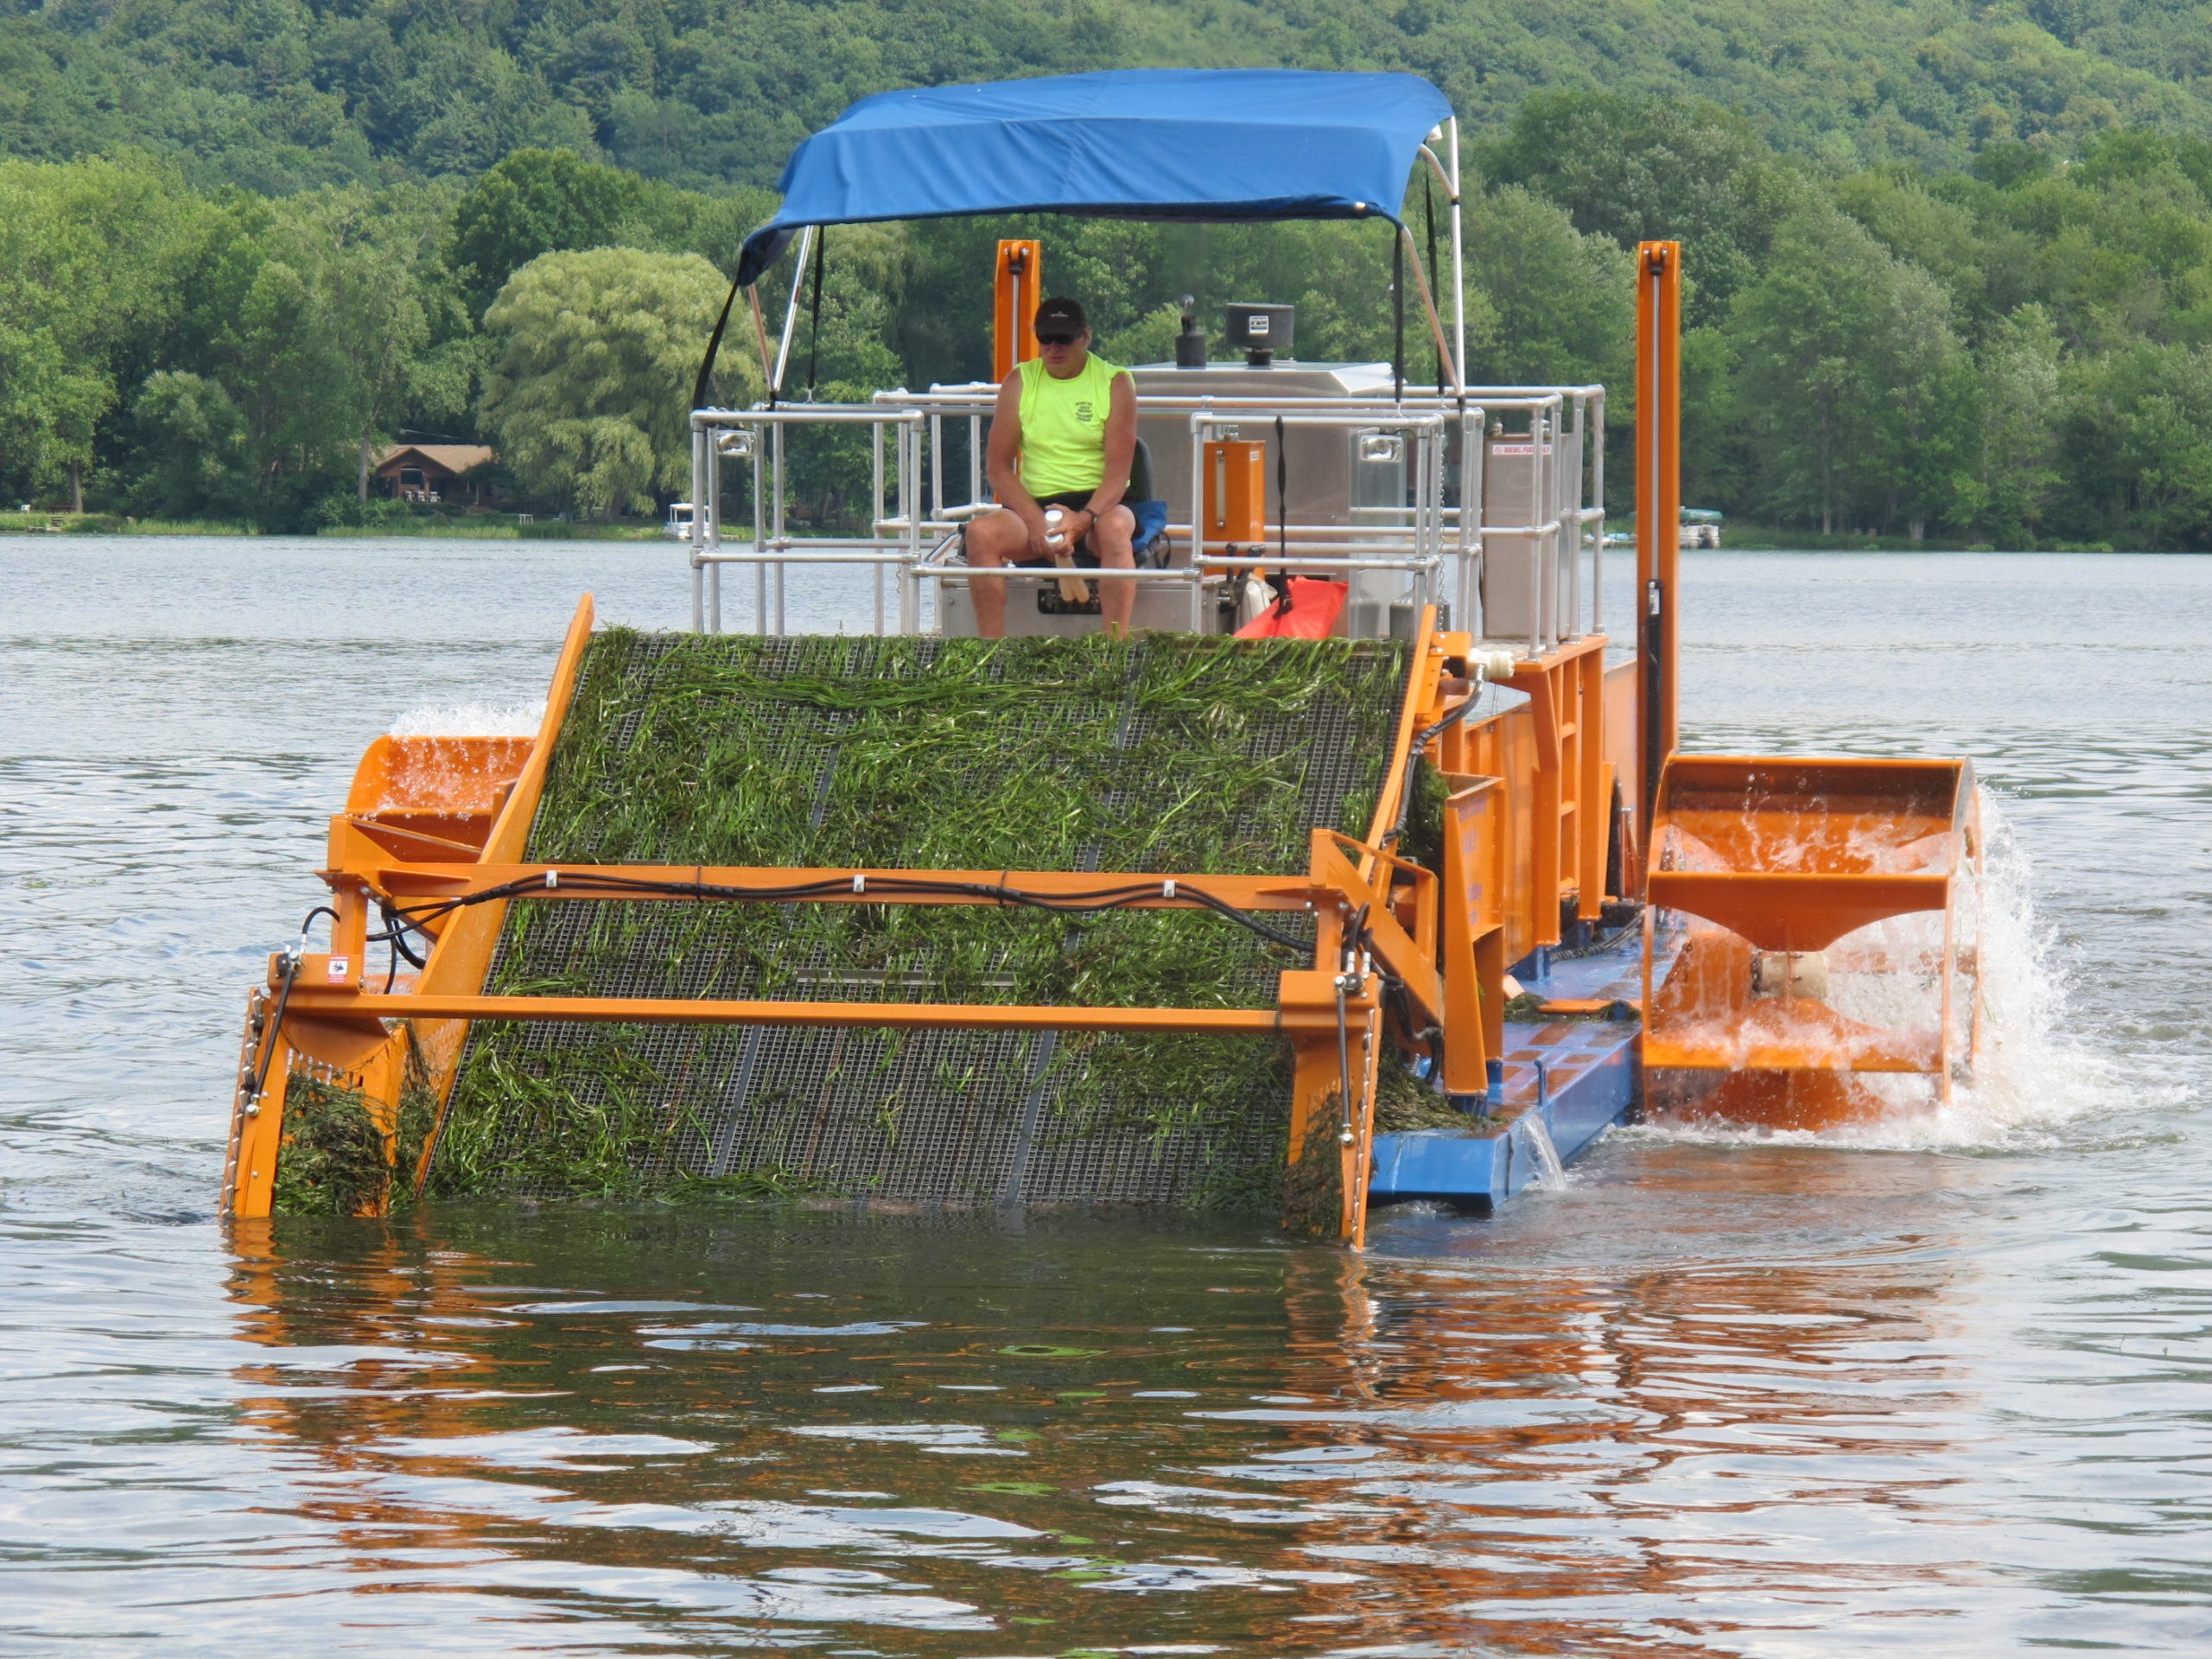 Alphaboats FX-11 Waterweed Harvester on the Job in New Yorks Finger Lakes